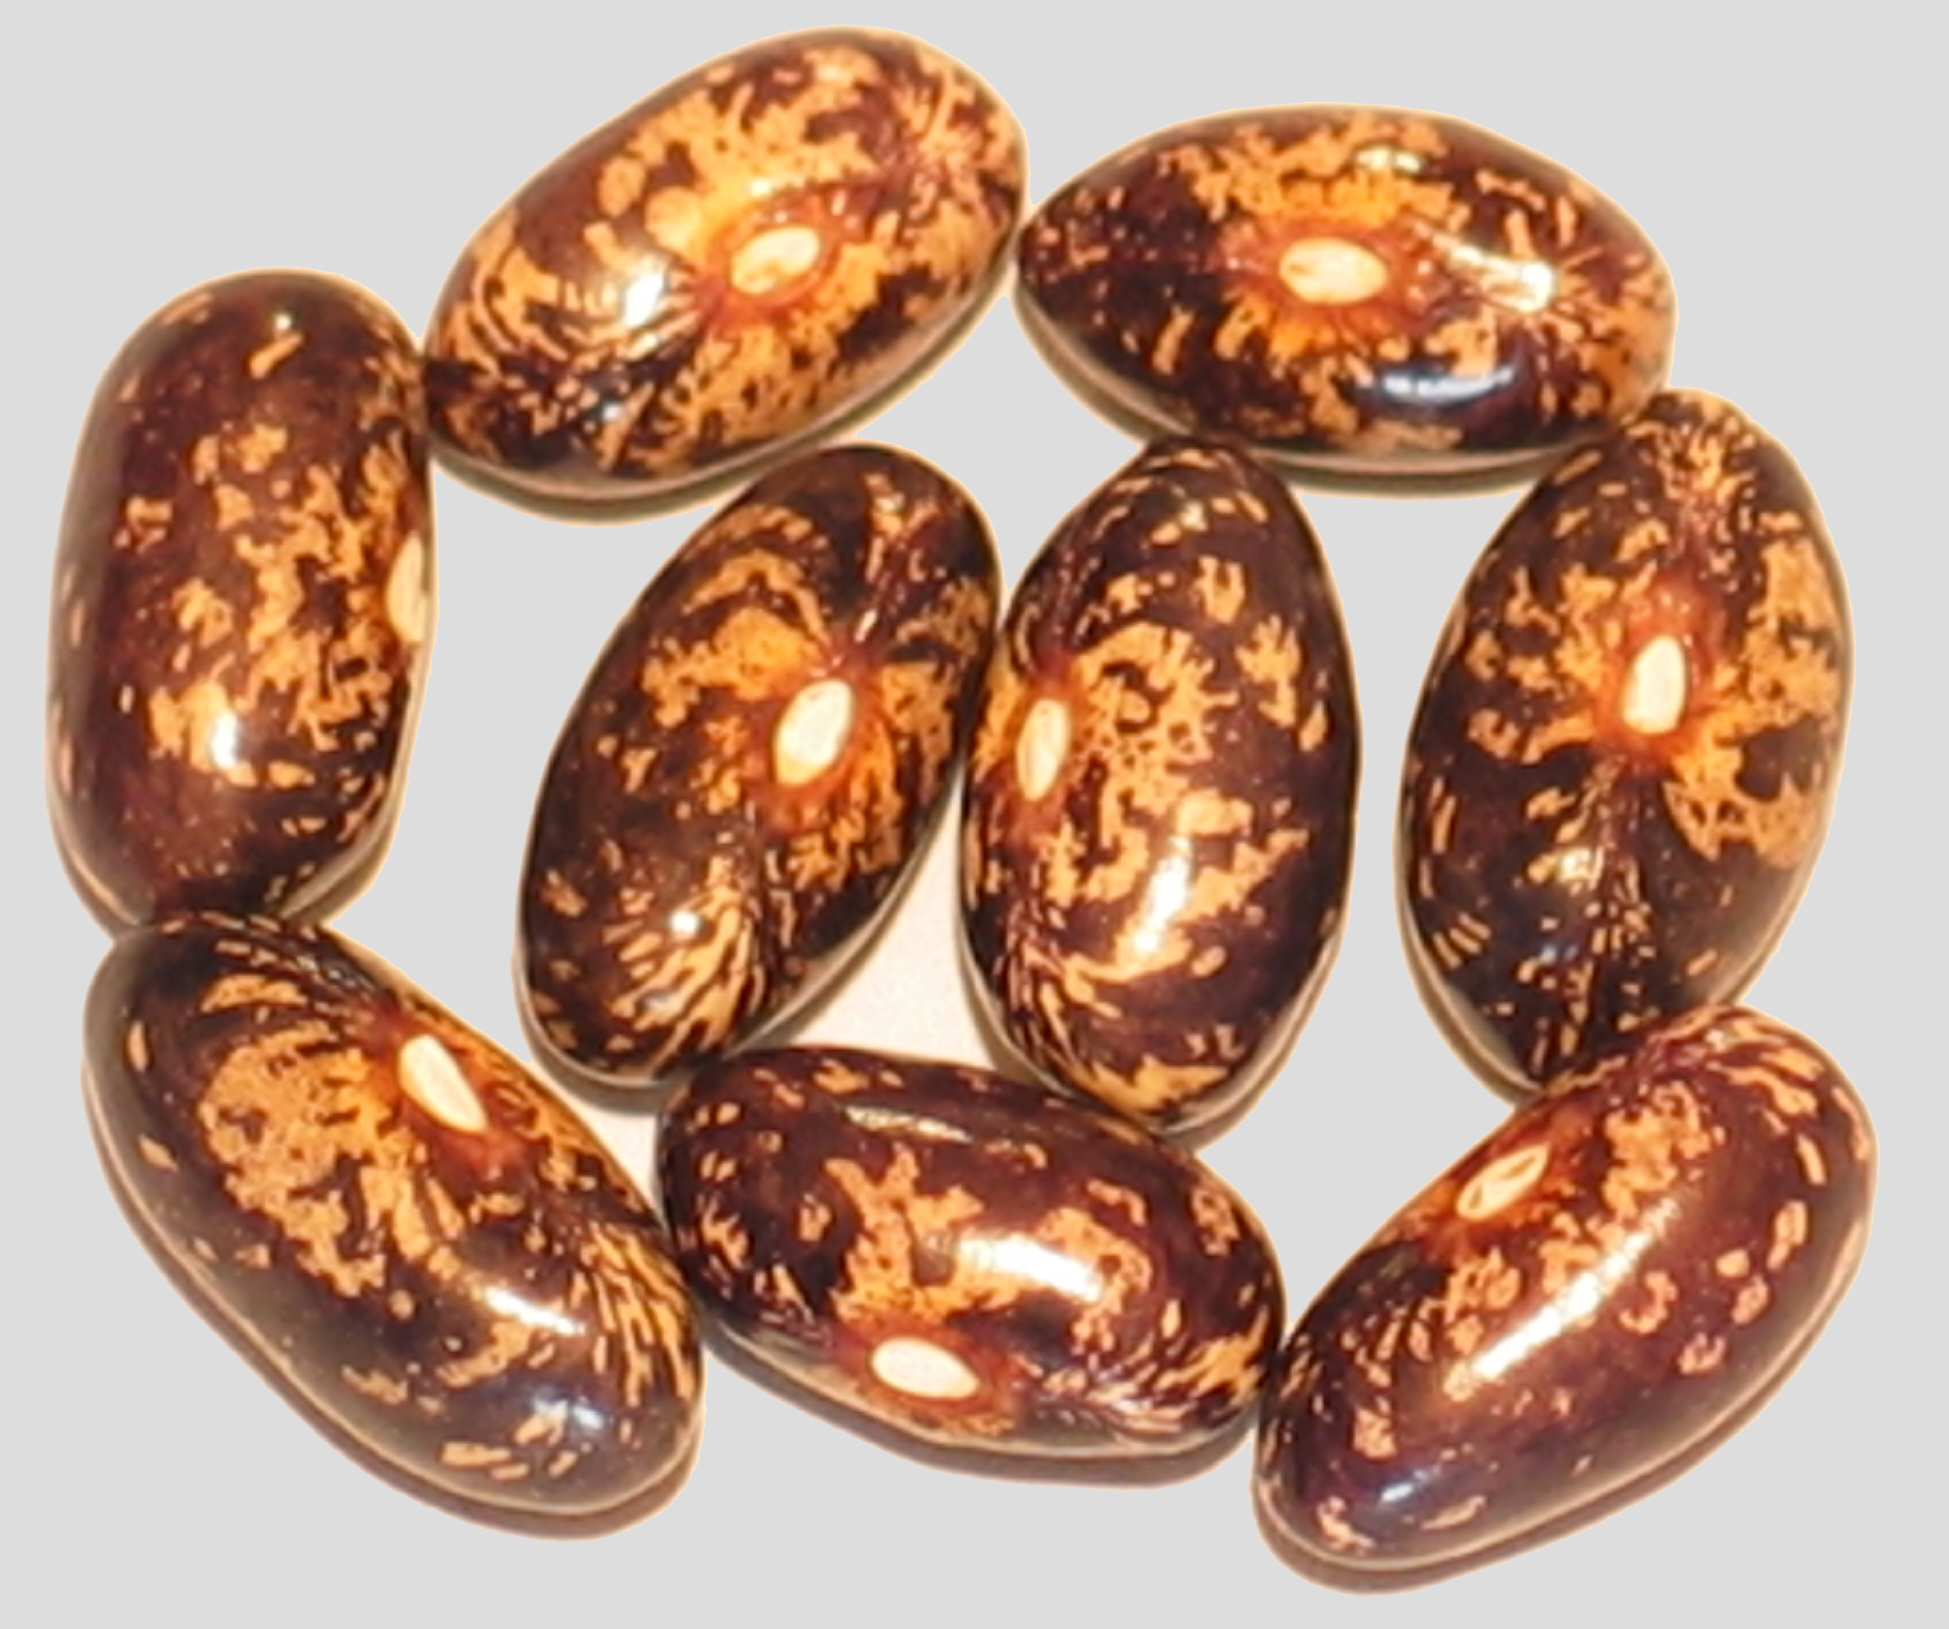 image of Fisole Rassacher Kipfleer beans